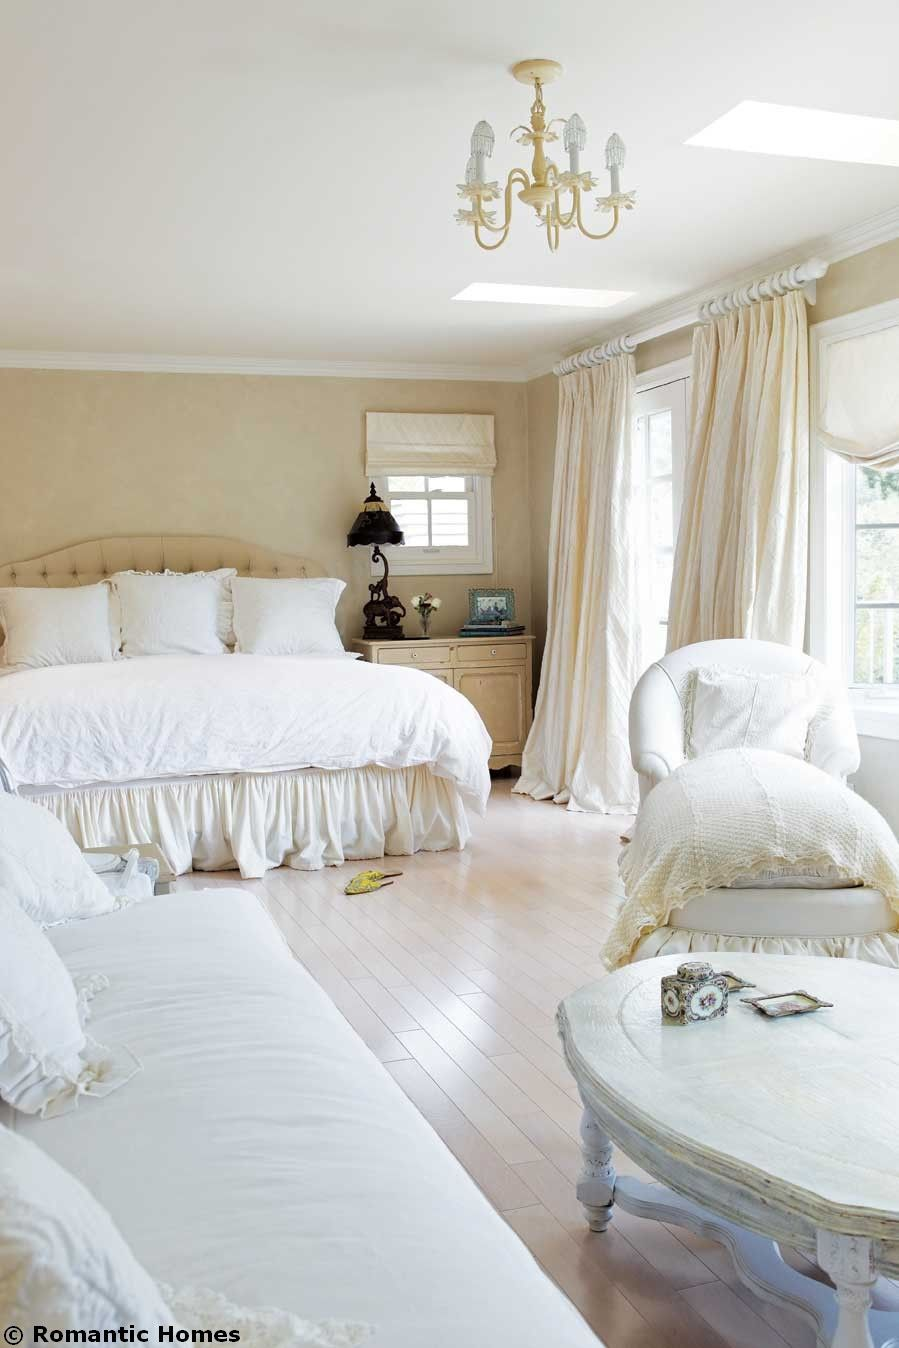 Romantic White Bedroom: Richly Appointed Bedding And Generous Window Treatments